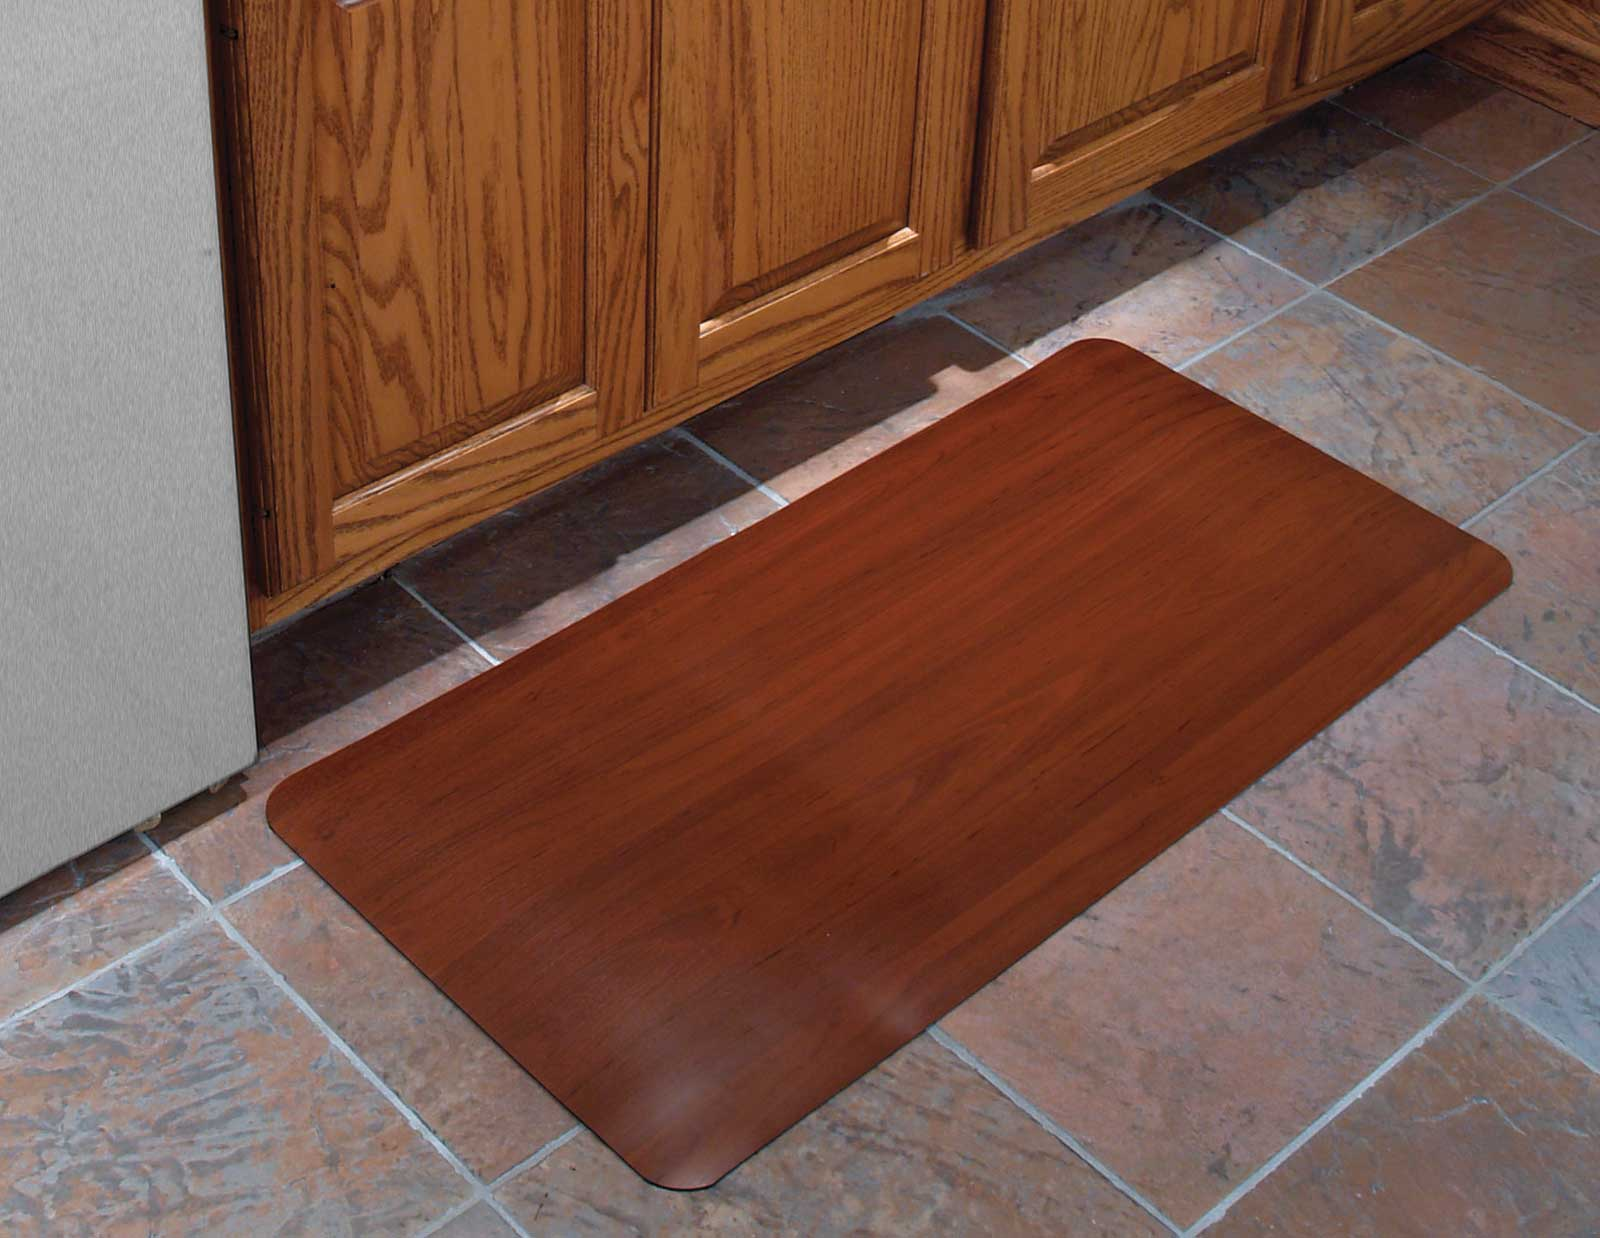 24x36 Inch Cushioned Floor Mat Wood Grain In Kitchen Mats